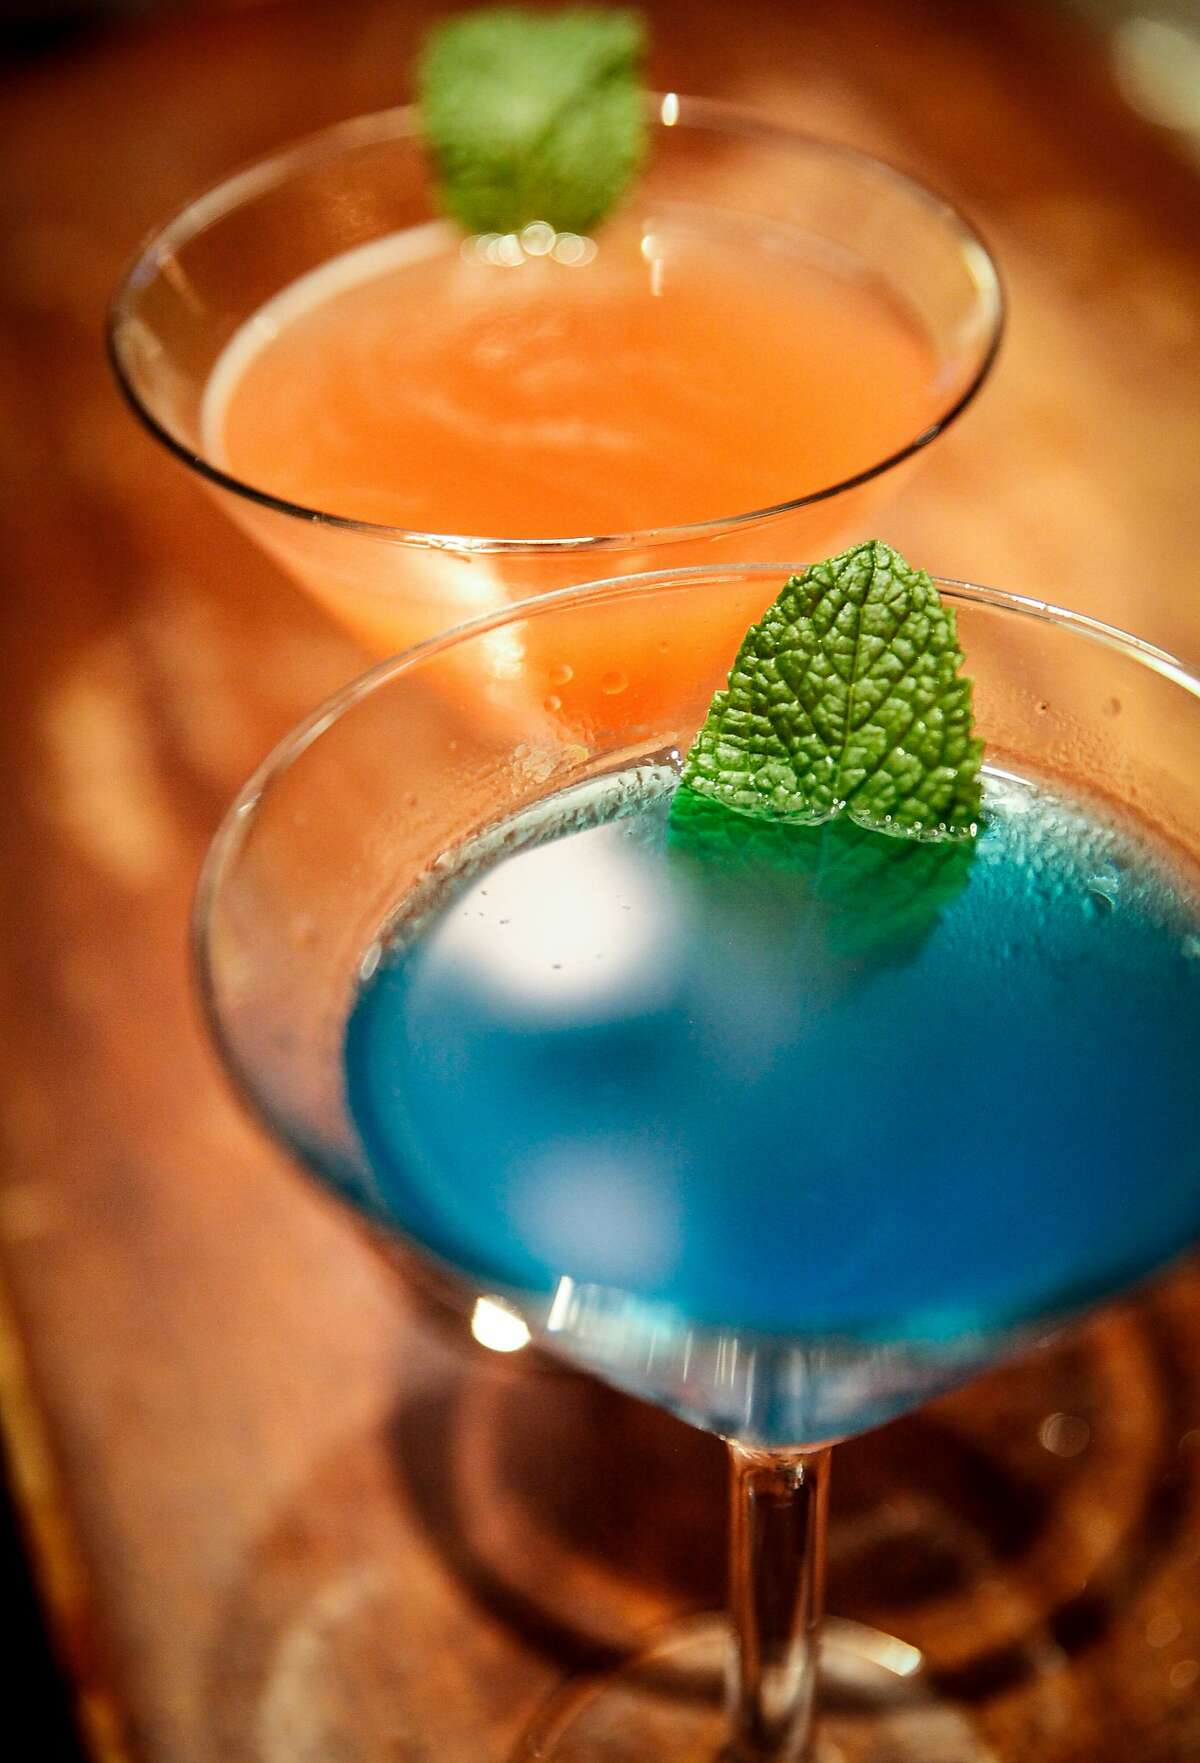 The namesake drinks, a blue and a pink sardine martini, at the Sardine Factory in Monterey, Calif., Saturday, November 14, 2015. The blue sardine martini is gin, hpnotiq liquer, peach schnapps and blue curacao with a splash of fresh lime juice garnished with garden fresh mint. The pink sardine martini is x rated vodka infused with mango, passion fruit and blood orange, and a splash of pineapple in a mint leaf rimmed glass.